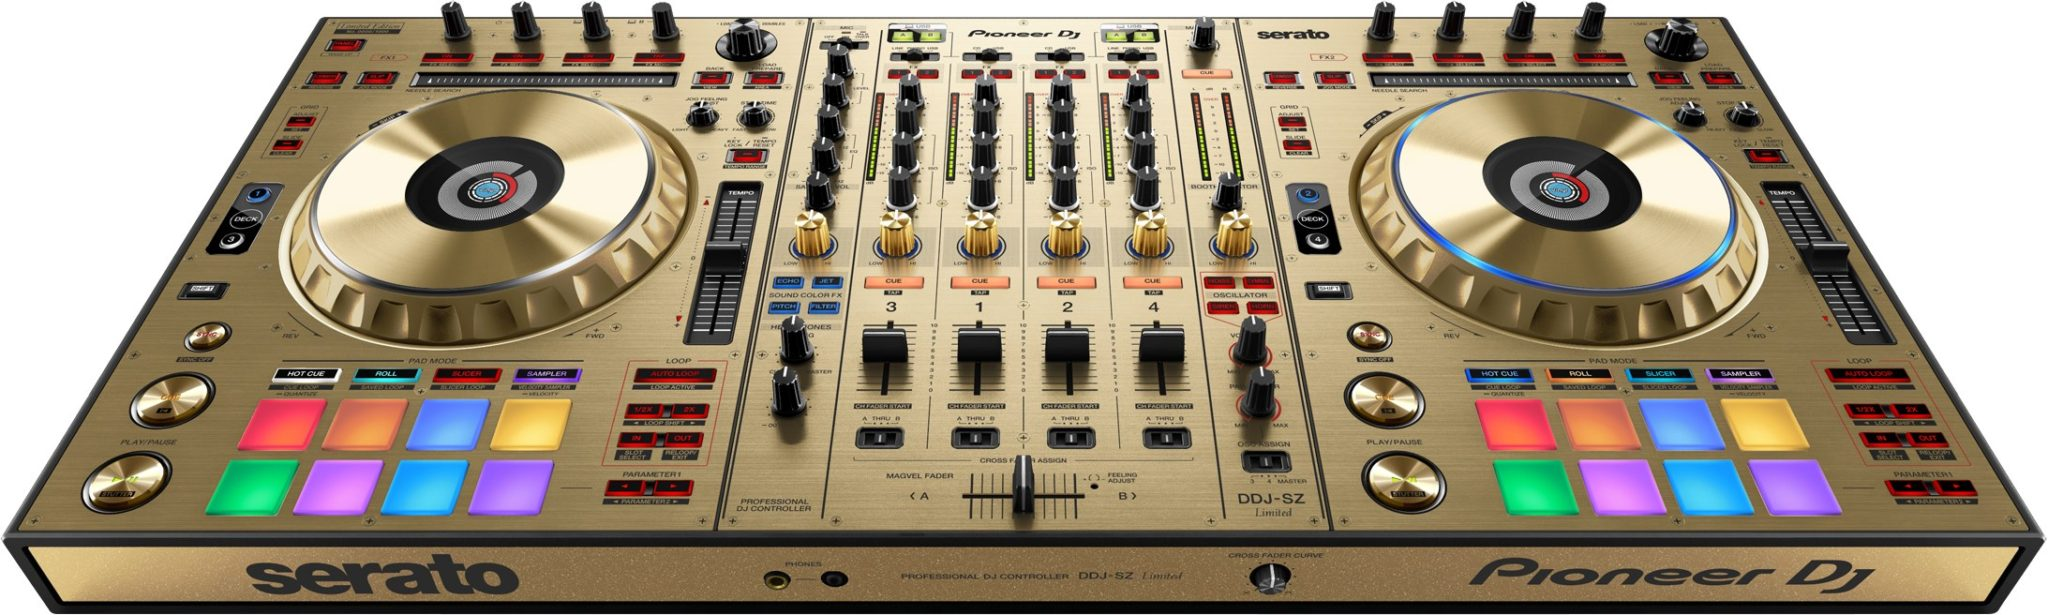 Pioneer's DDJ-SZ, also available in blingy gold finish.